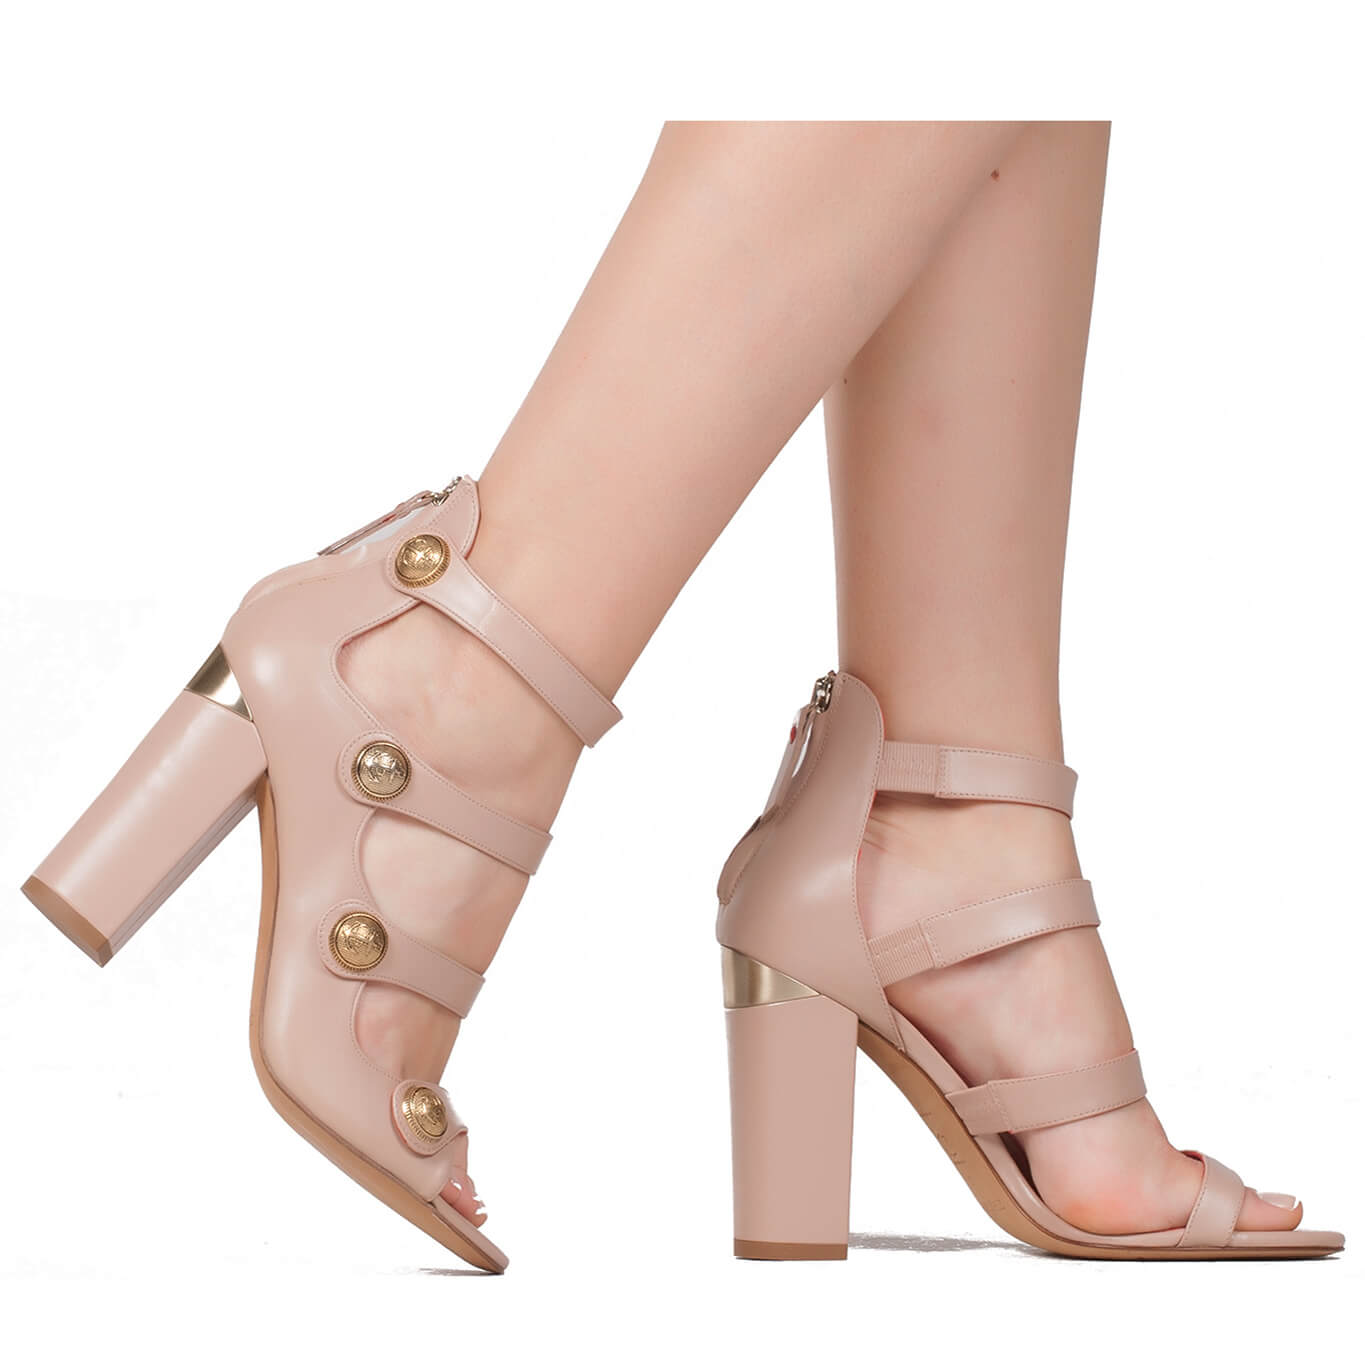 92125fad39f0 High block heel sandals in nude leather with metallic buttons High heel  sandals with metal buttons - online shoe store Pura Lopez ...